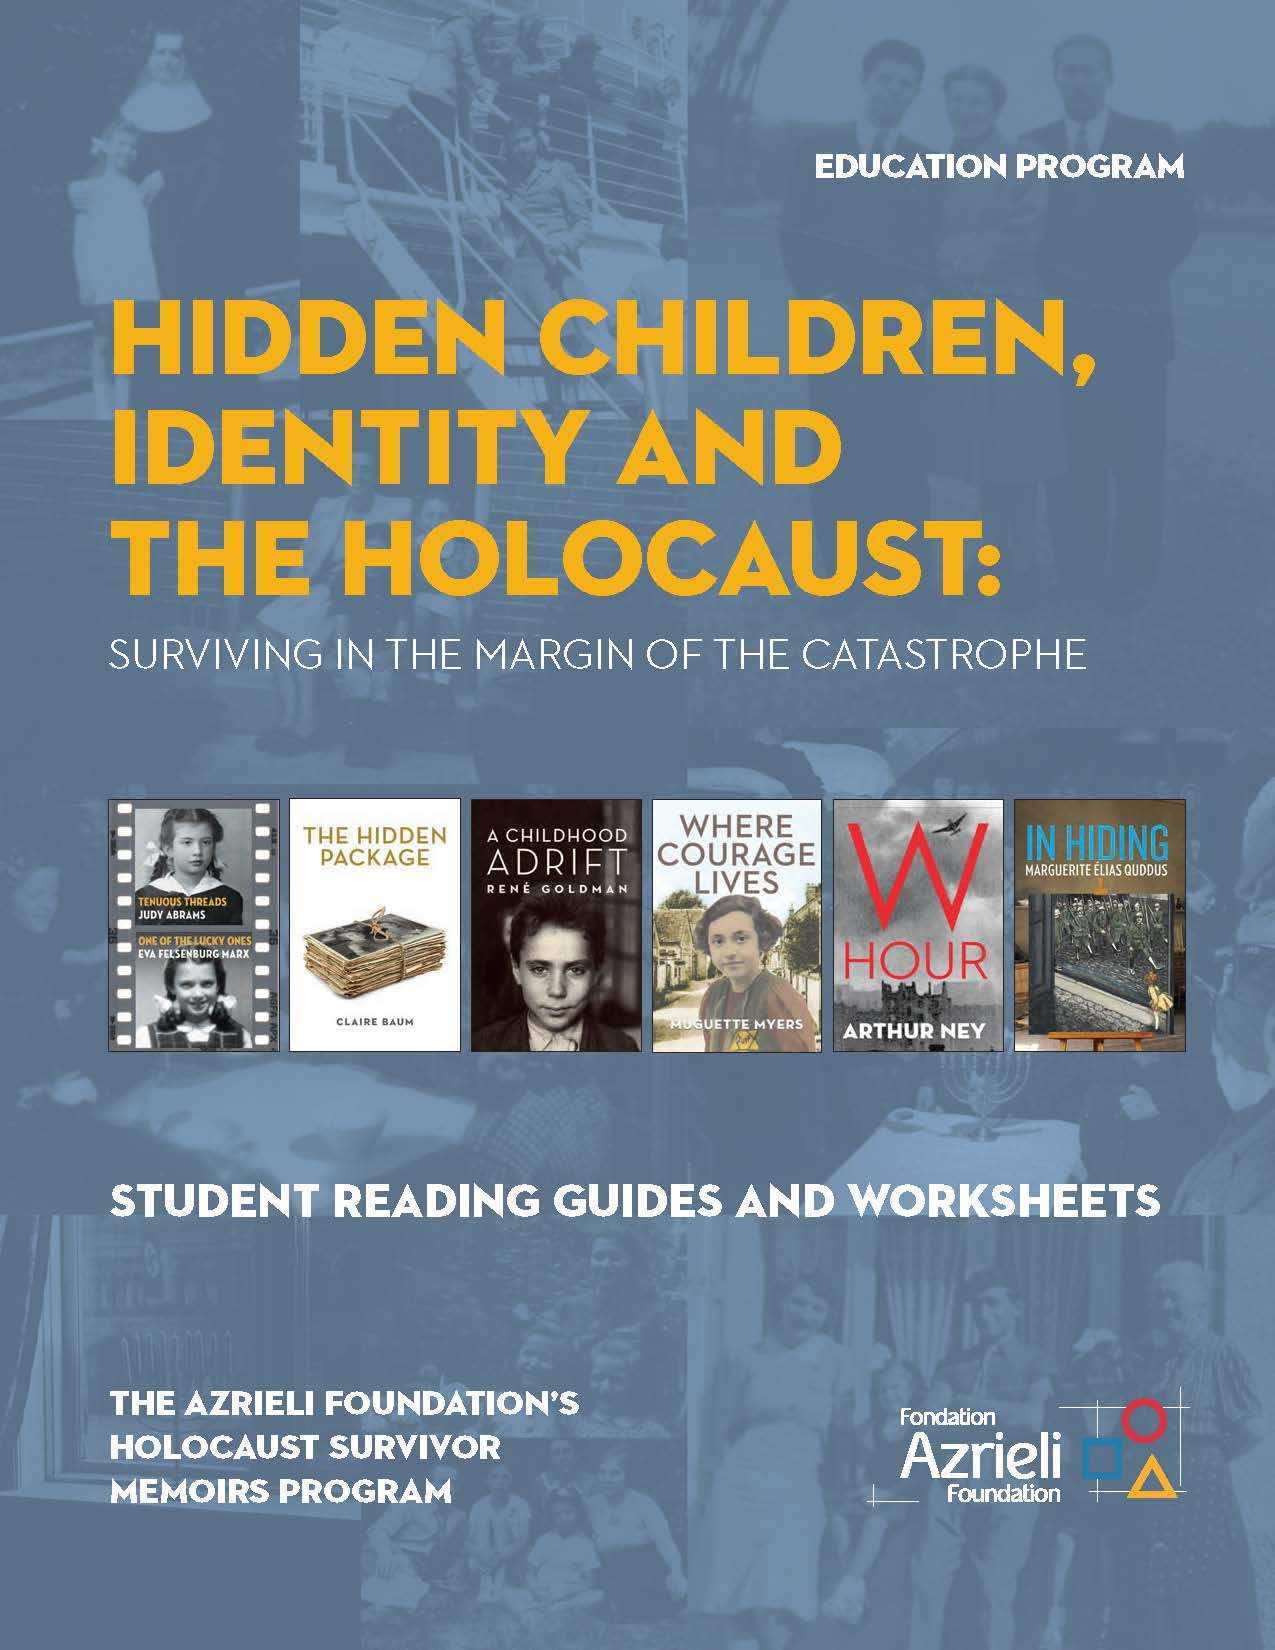 The Holocaust Survivor Memoirs Program